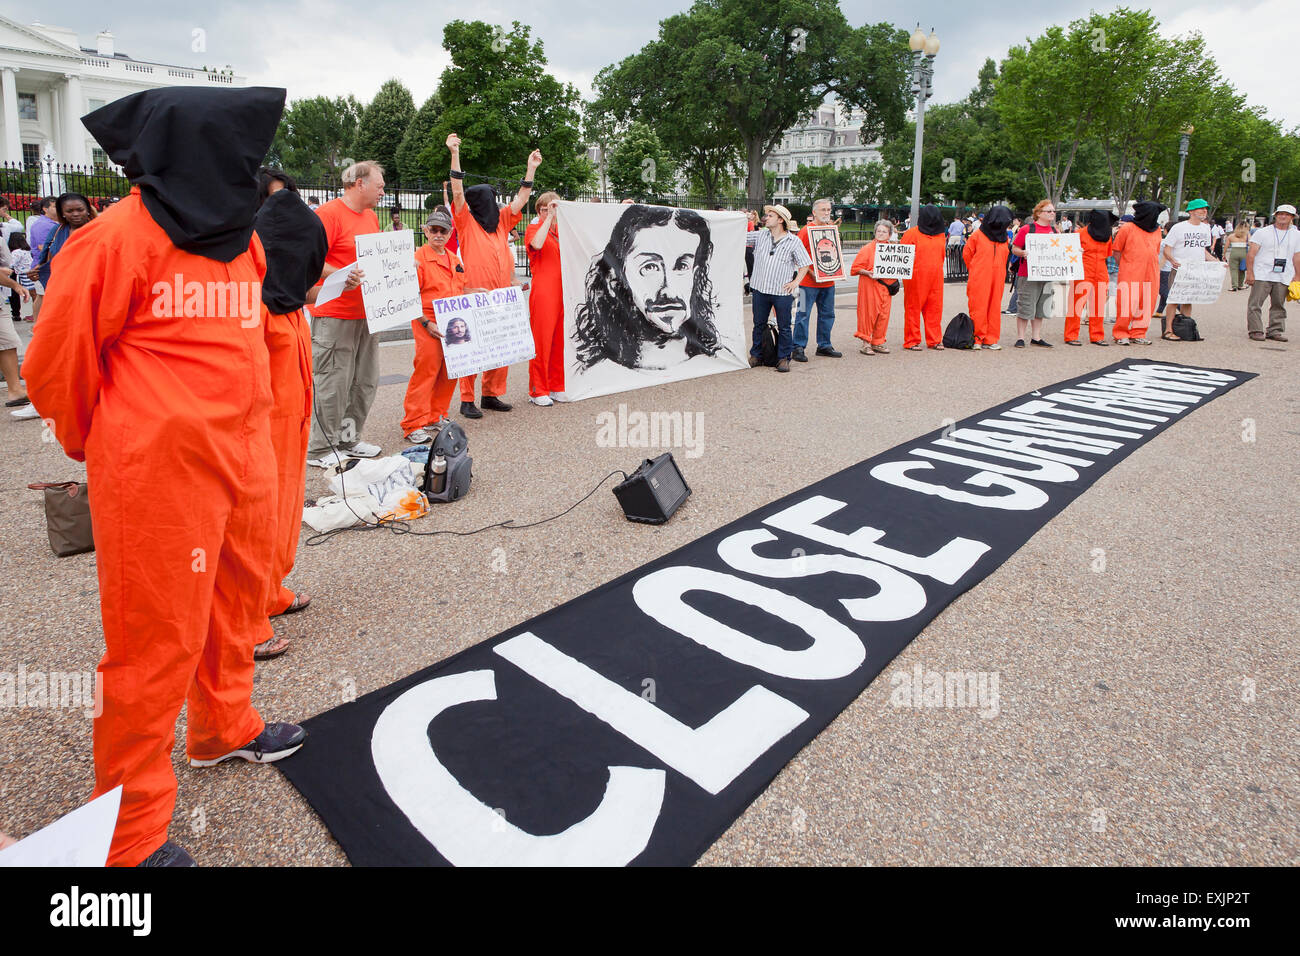 Human rights activists protesting for the closure of Guantanamo Bay prison in front of the White House - Washington, - Stock Image